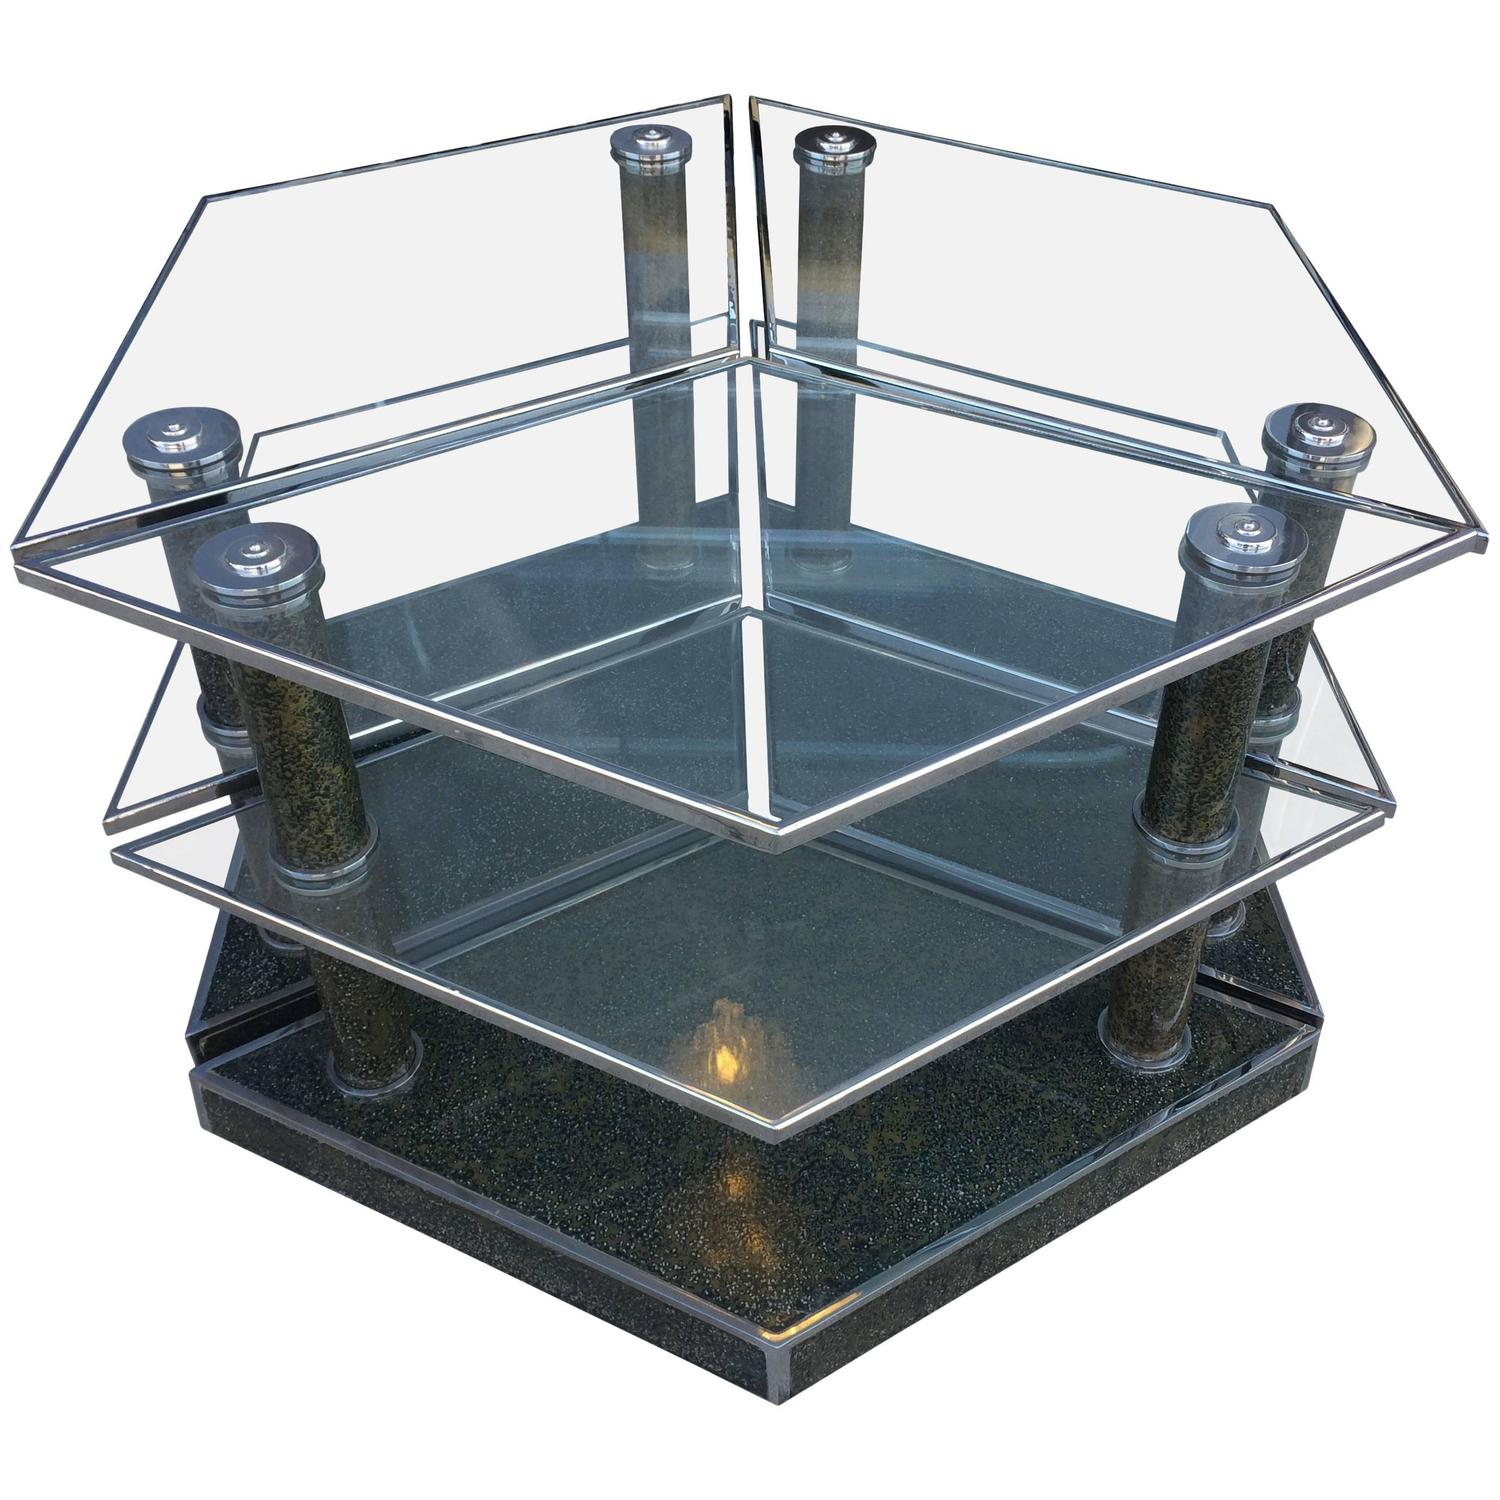 vintage modular coffee table in glass and chrome for sale modular coffee table image 2